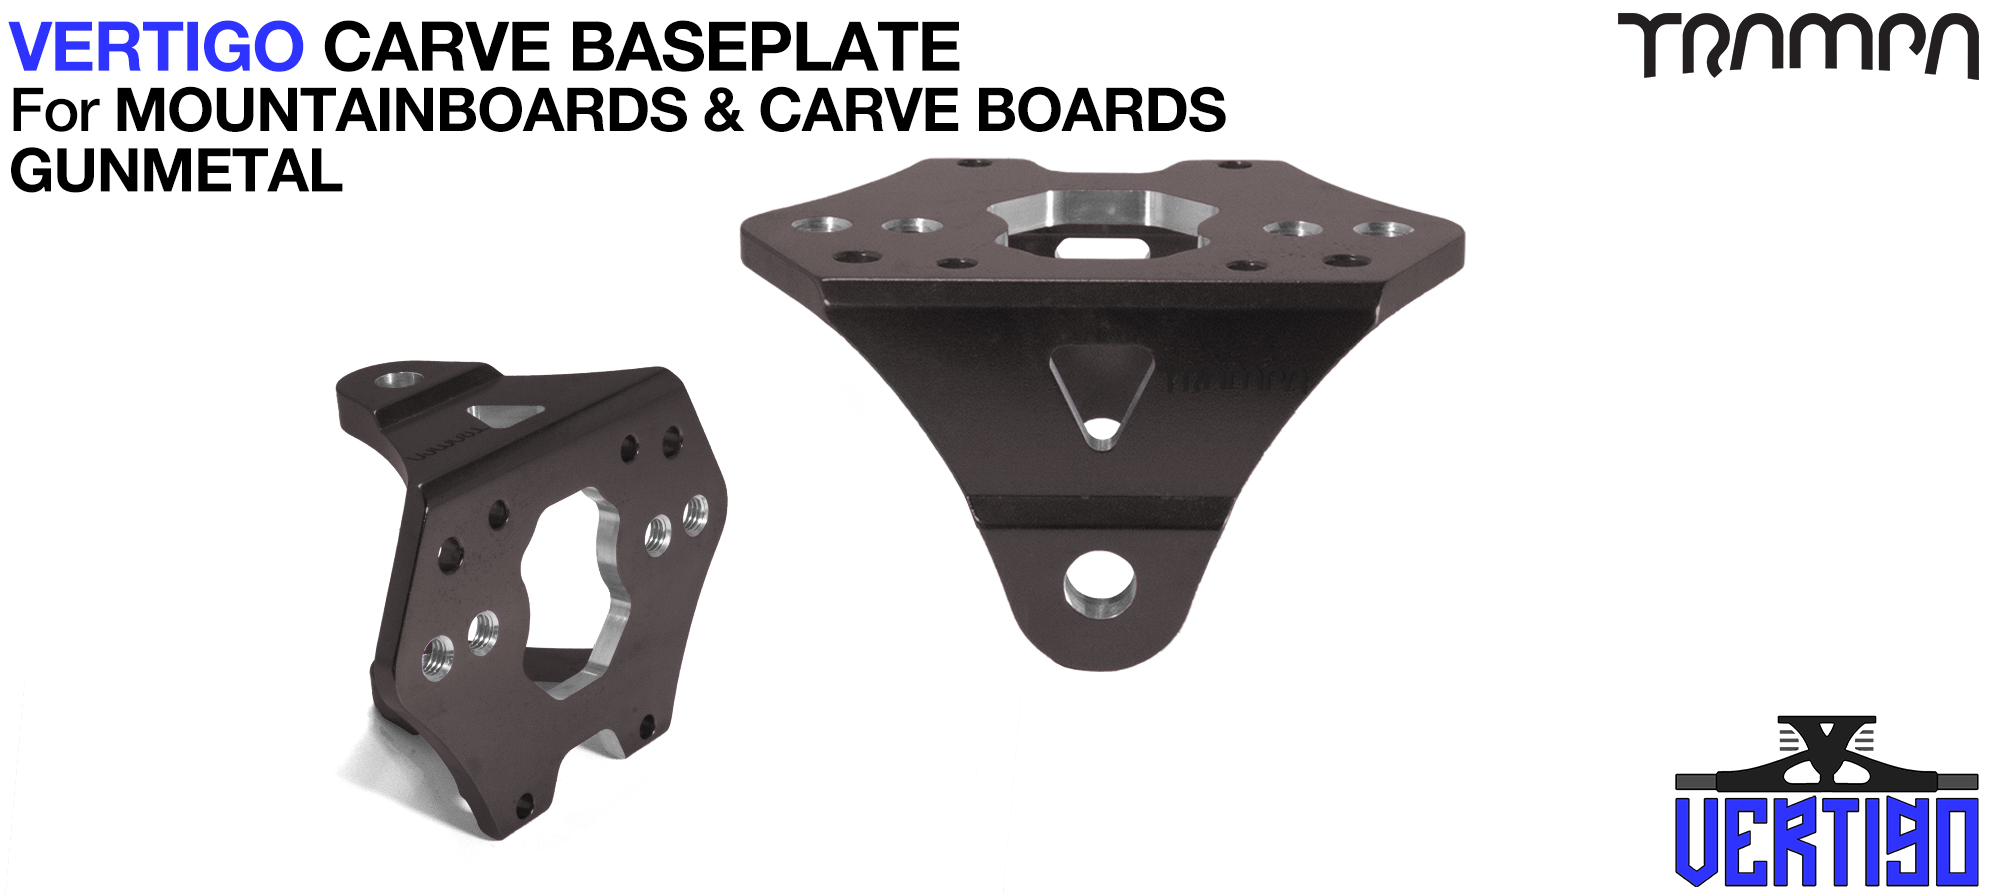 VERTIGO Baseplate GUNMETAL - T6 Aluminum Anodised & CNC lightened - Black logo  Carve